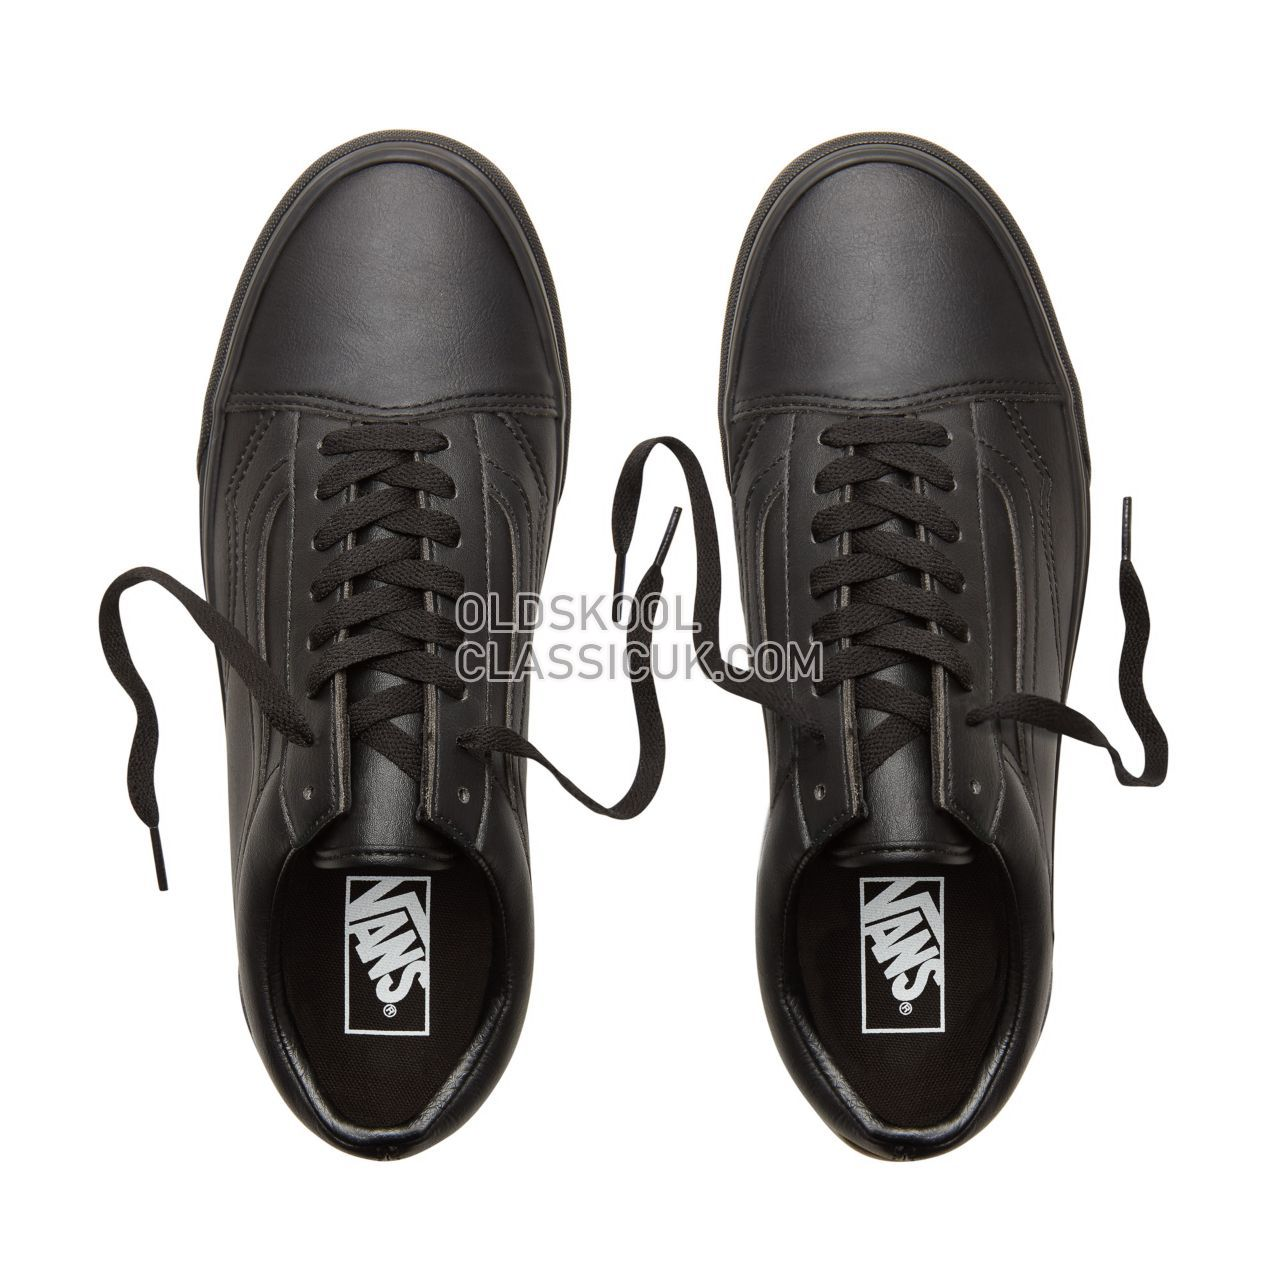 Vans Classic Tumble Old Skool Sneakers Mens Womens Unisex (Classic Tumble) Black Mono VA38G1PXP Shoes